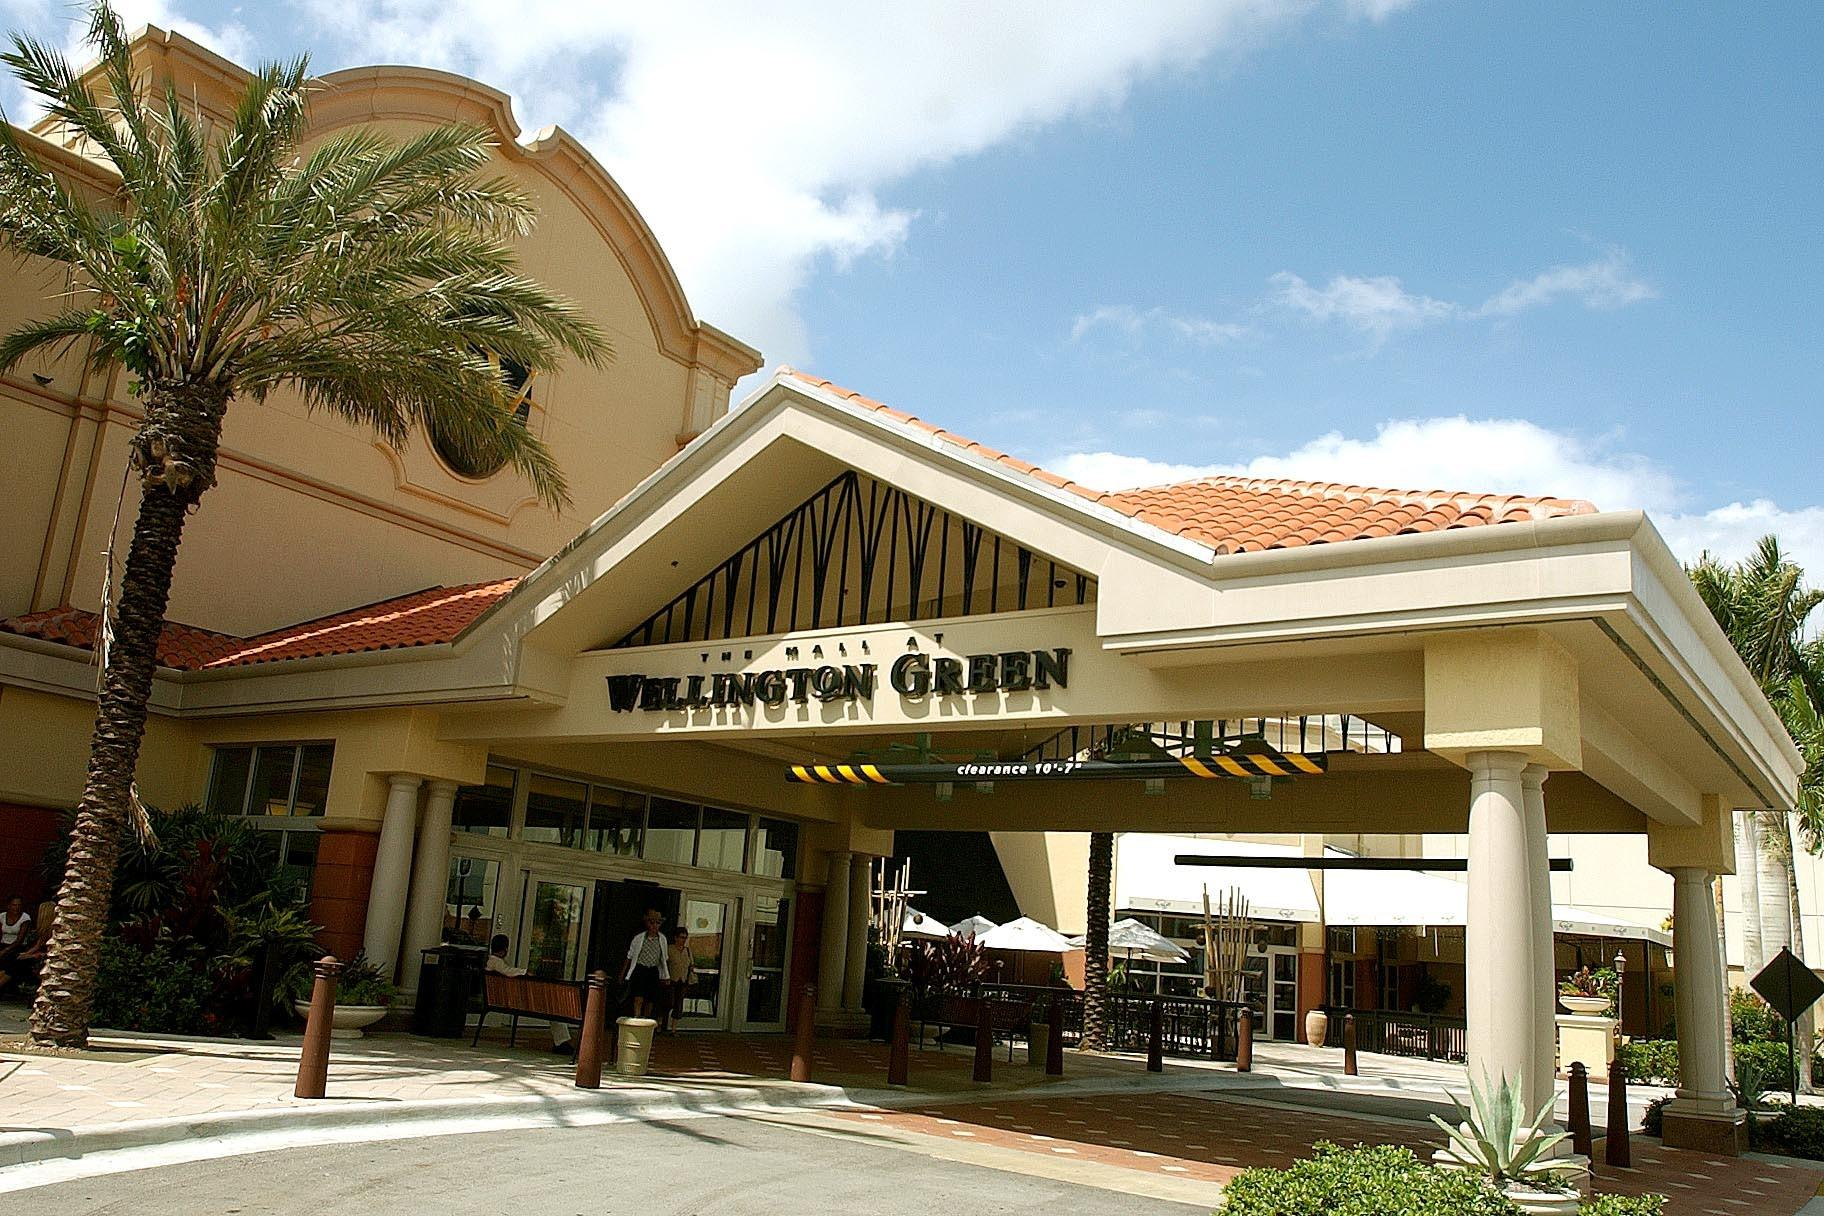 The Mall at Wellington Green, store listings, hours, hotels, comment forum and more (Wellington, FL).